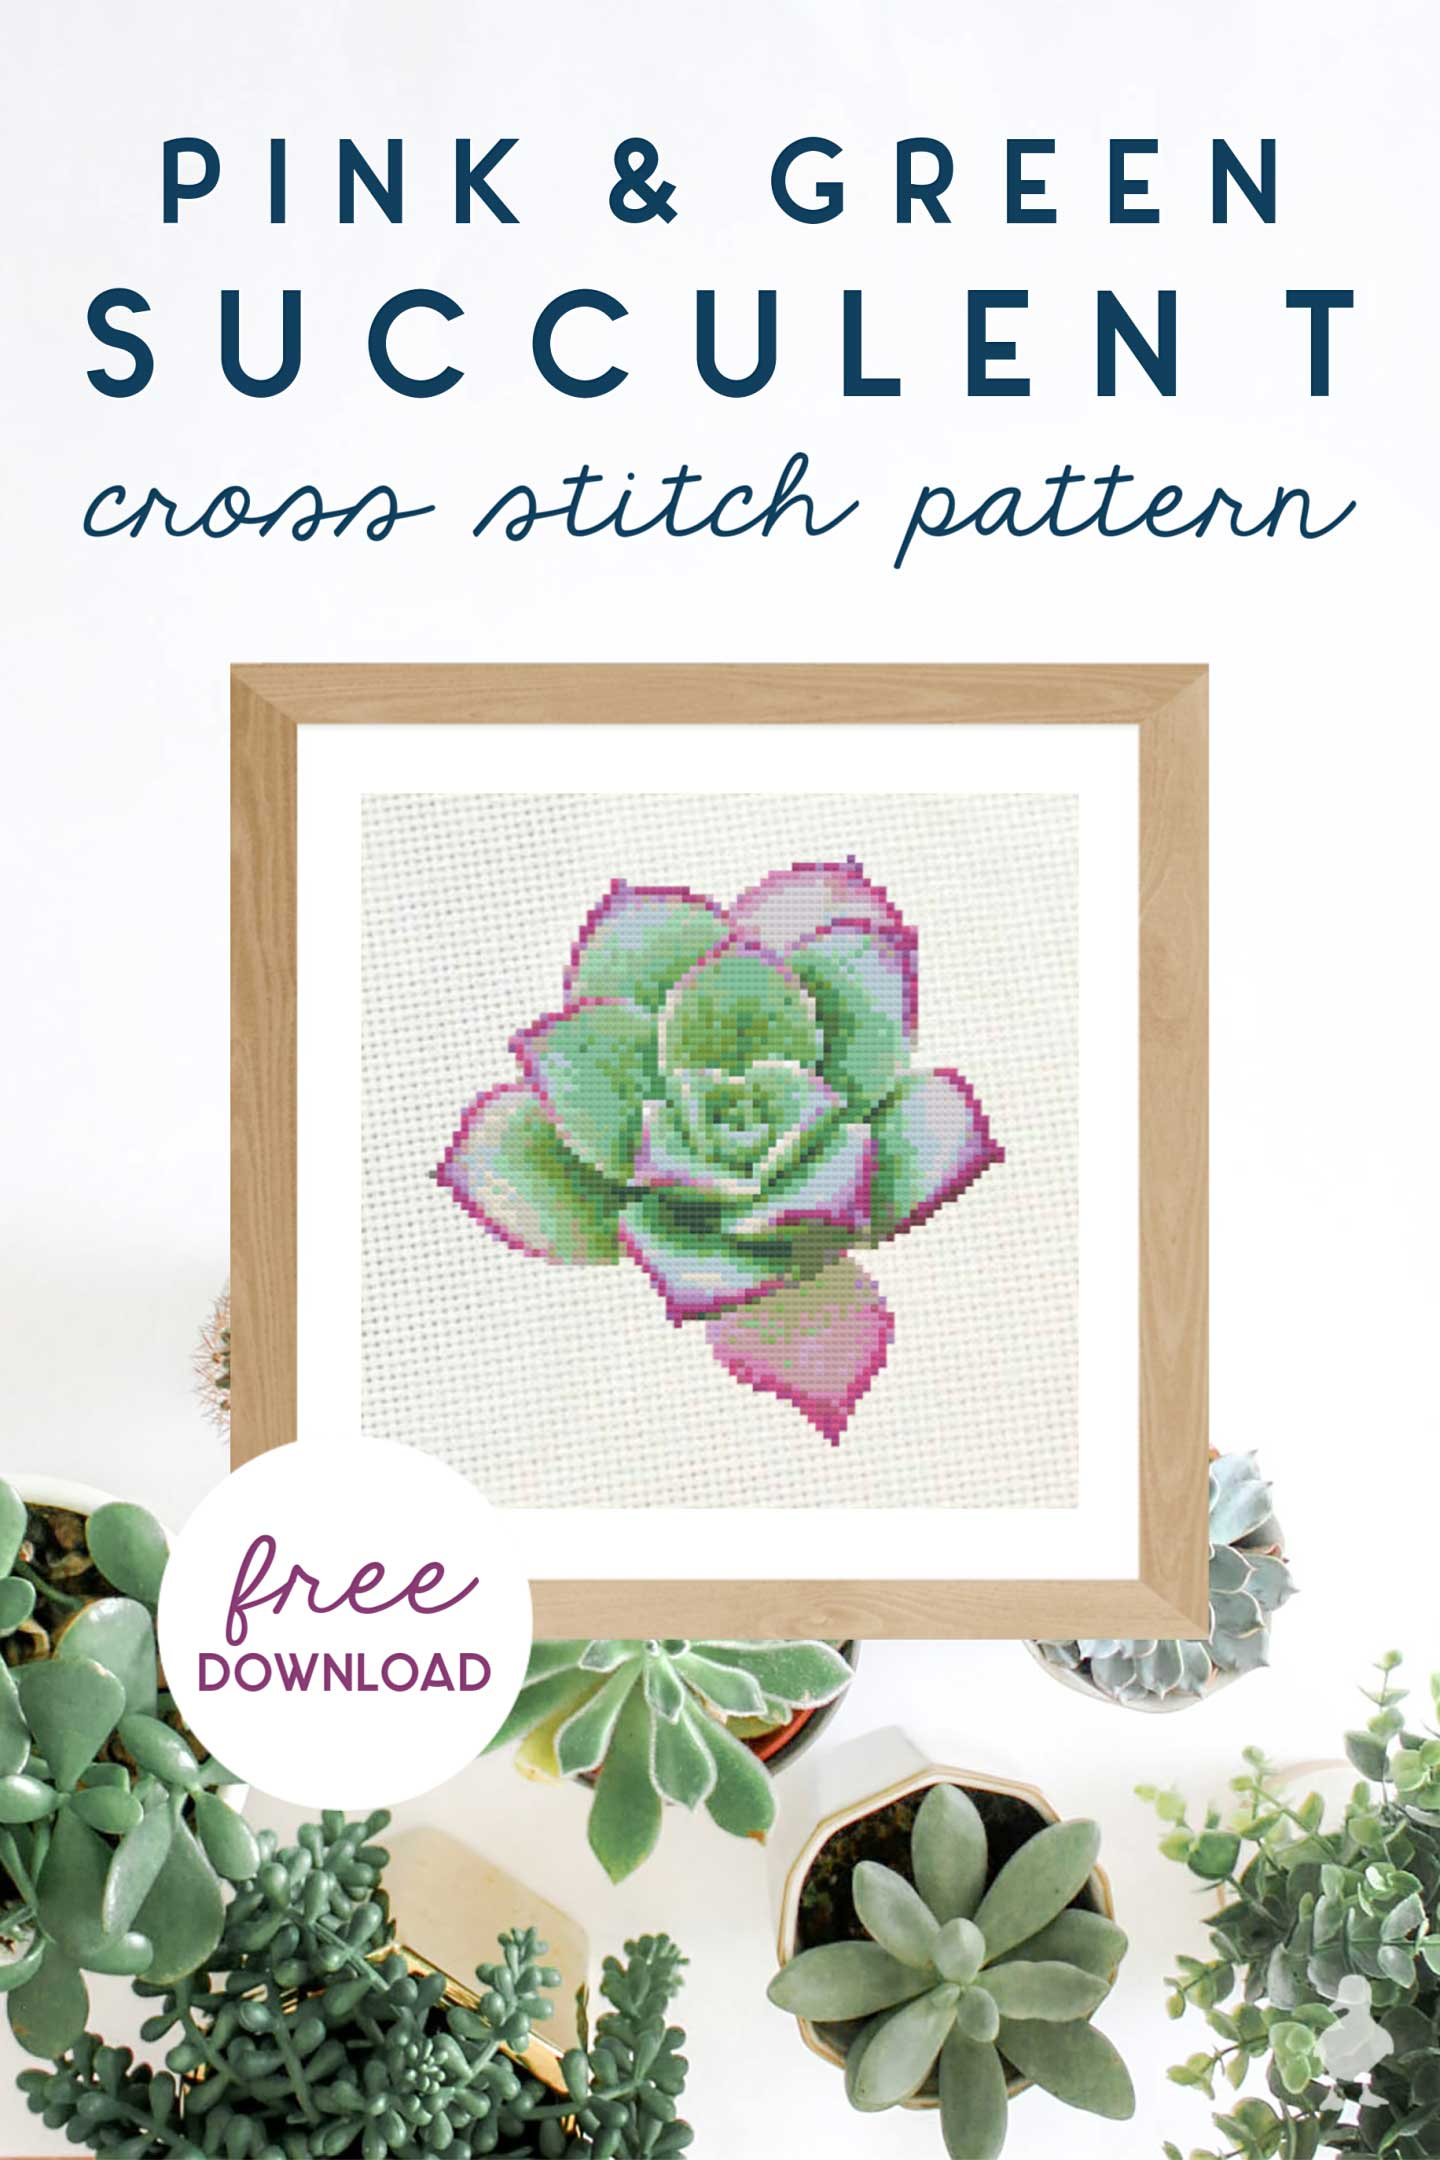 pink and green succulent cross stitch pattern - free pattern created by Ugly Duckling House